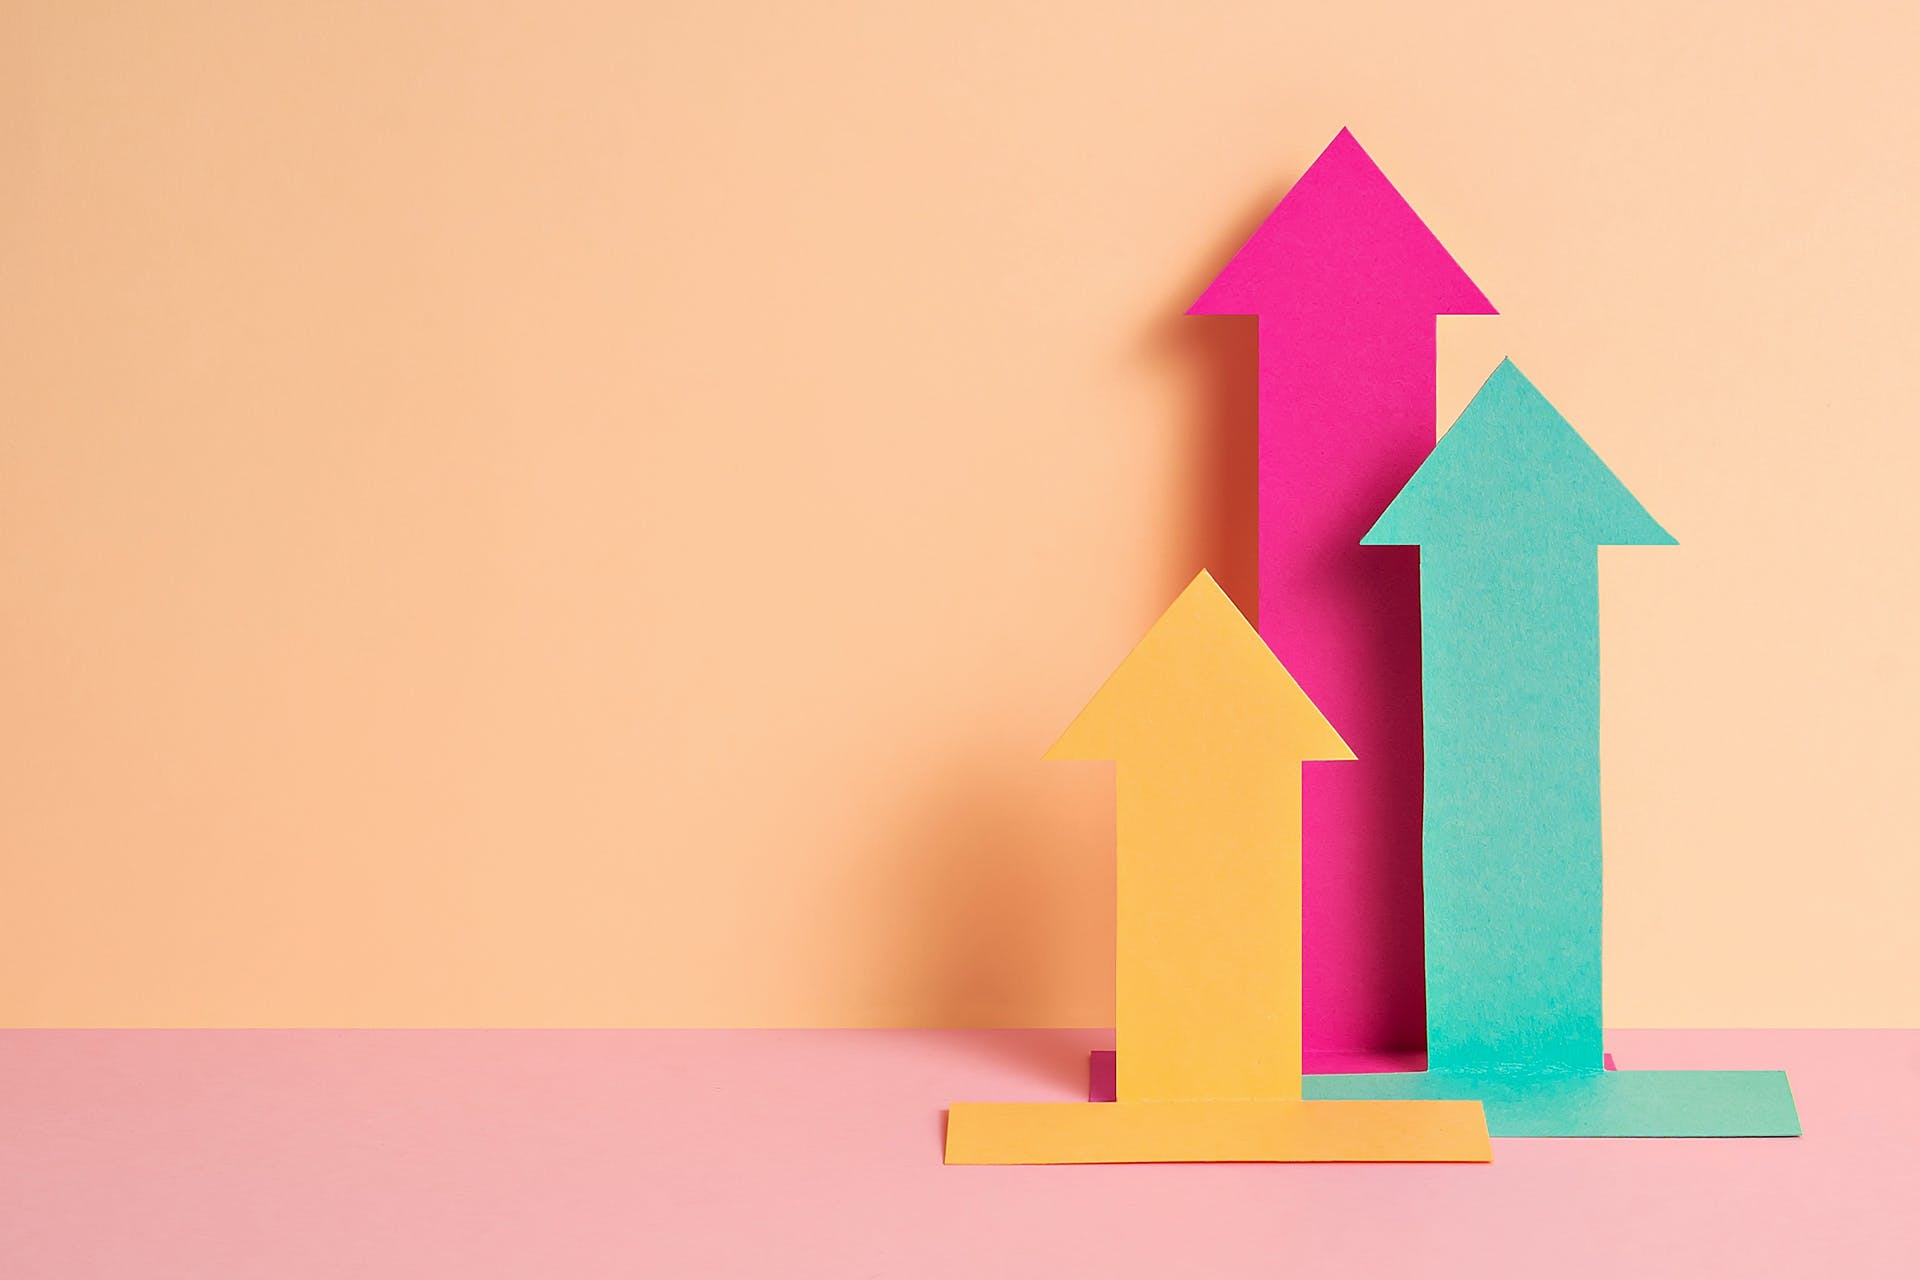 Three colorful arrows cut out of paper pointed upwards. The arrows are meant to reflect the direction of a graph that you might find after creating a PR or marketing report.